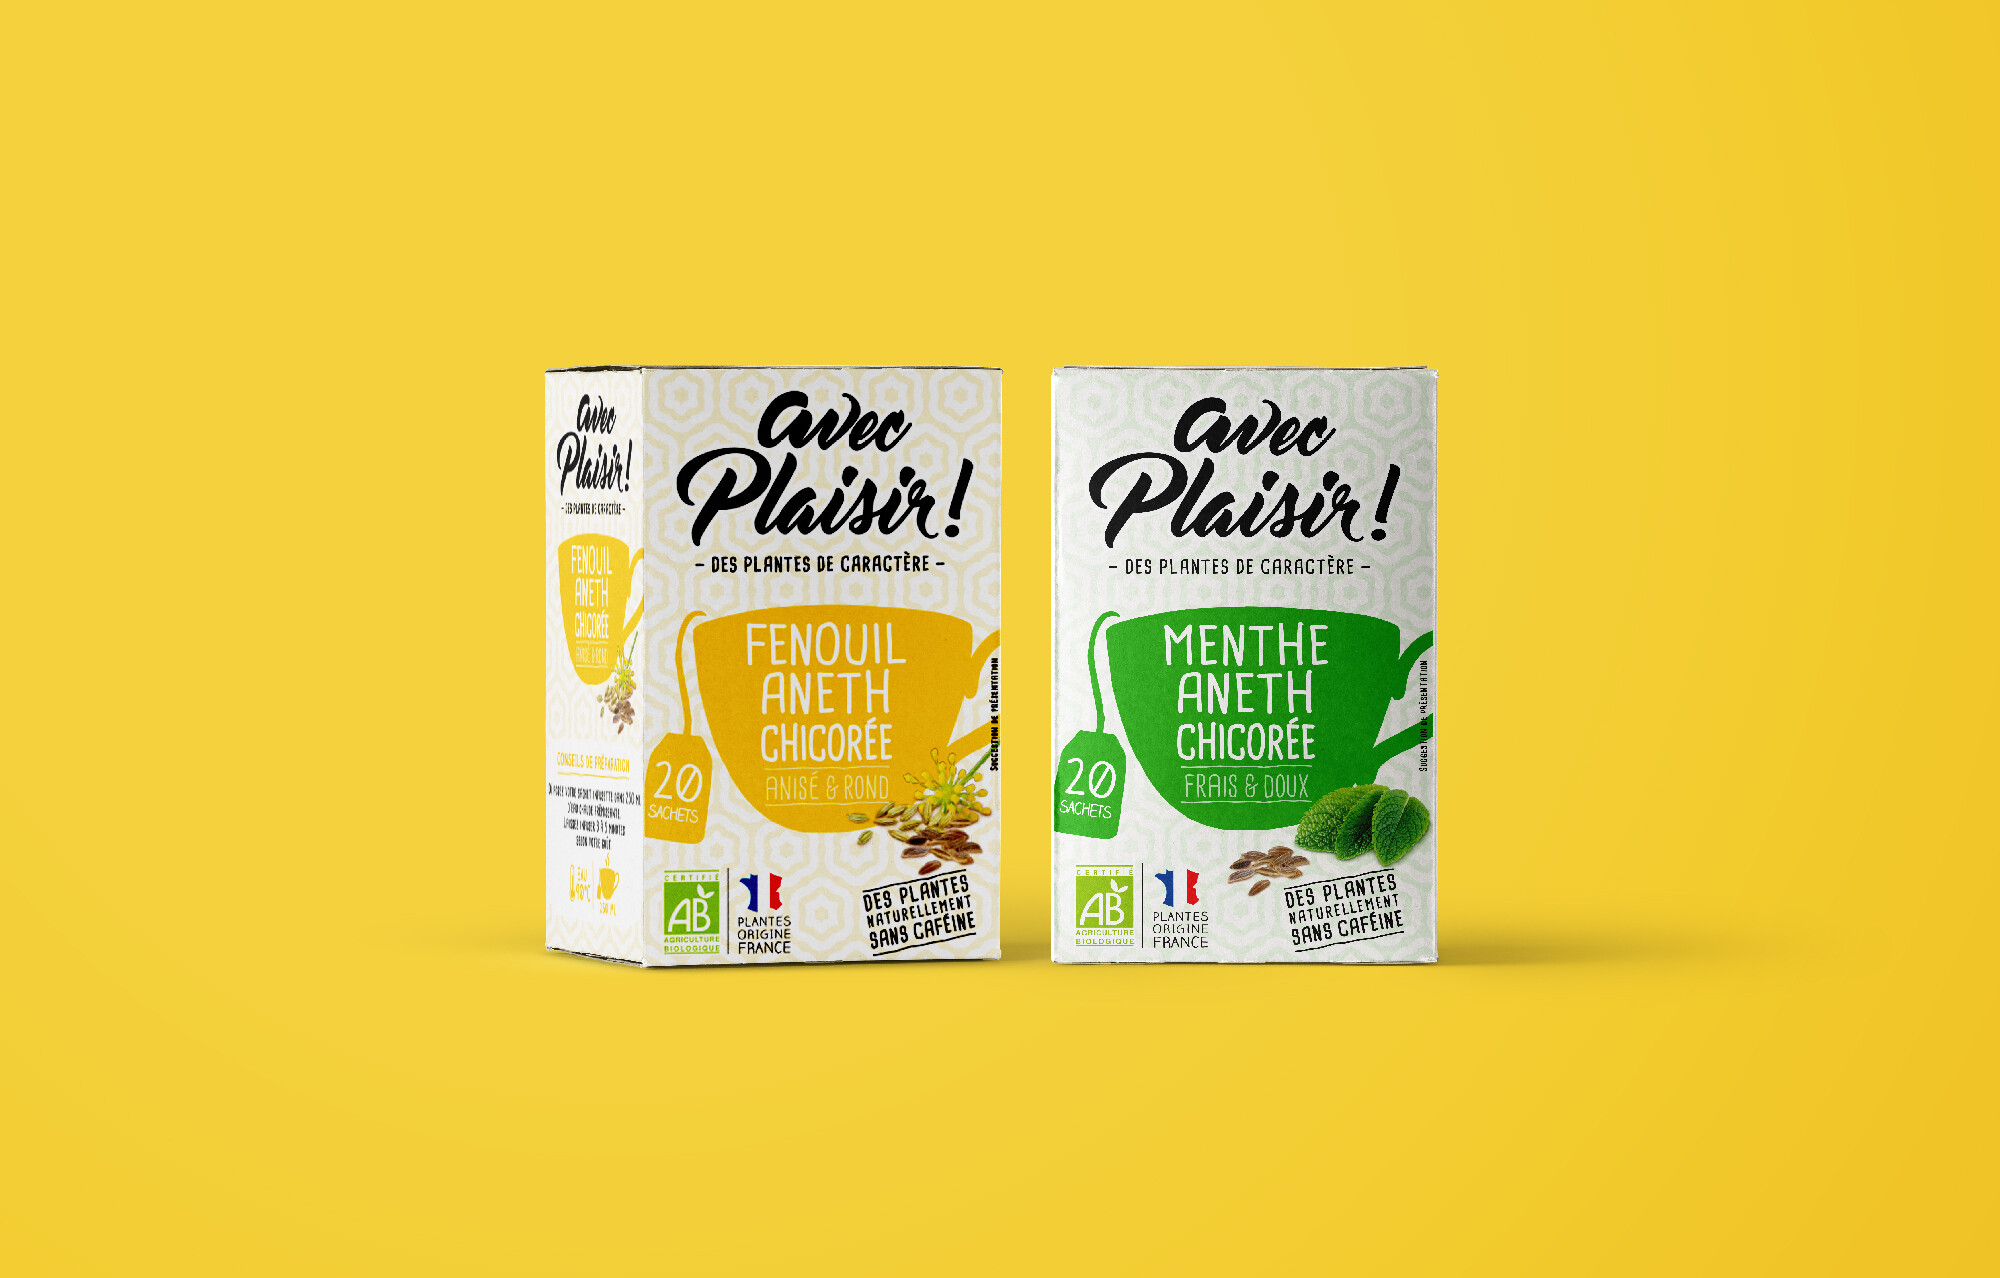 design packaging alimentaire infusion bio chicoree soluble torrefiee leroux tisane bio menthe aneth sans cafeine hotshop creative brand agency design packaging alimentaire